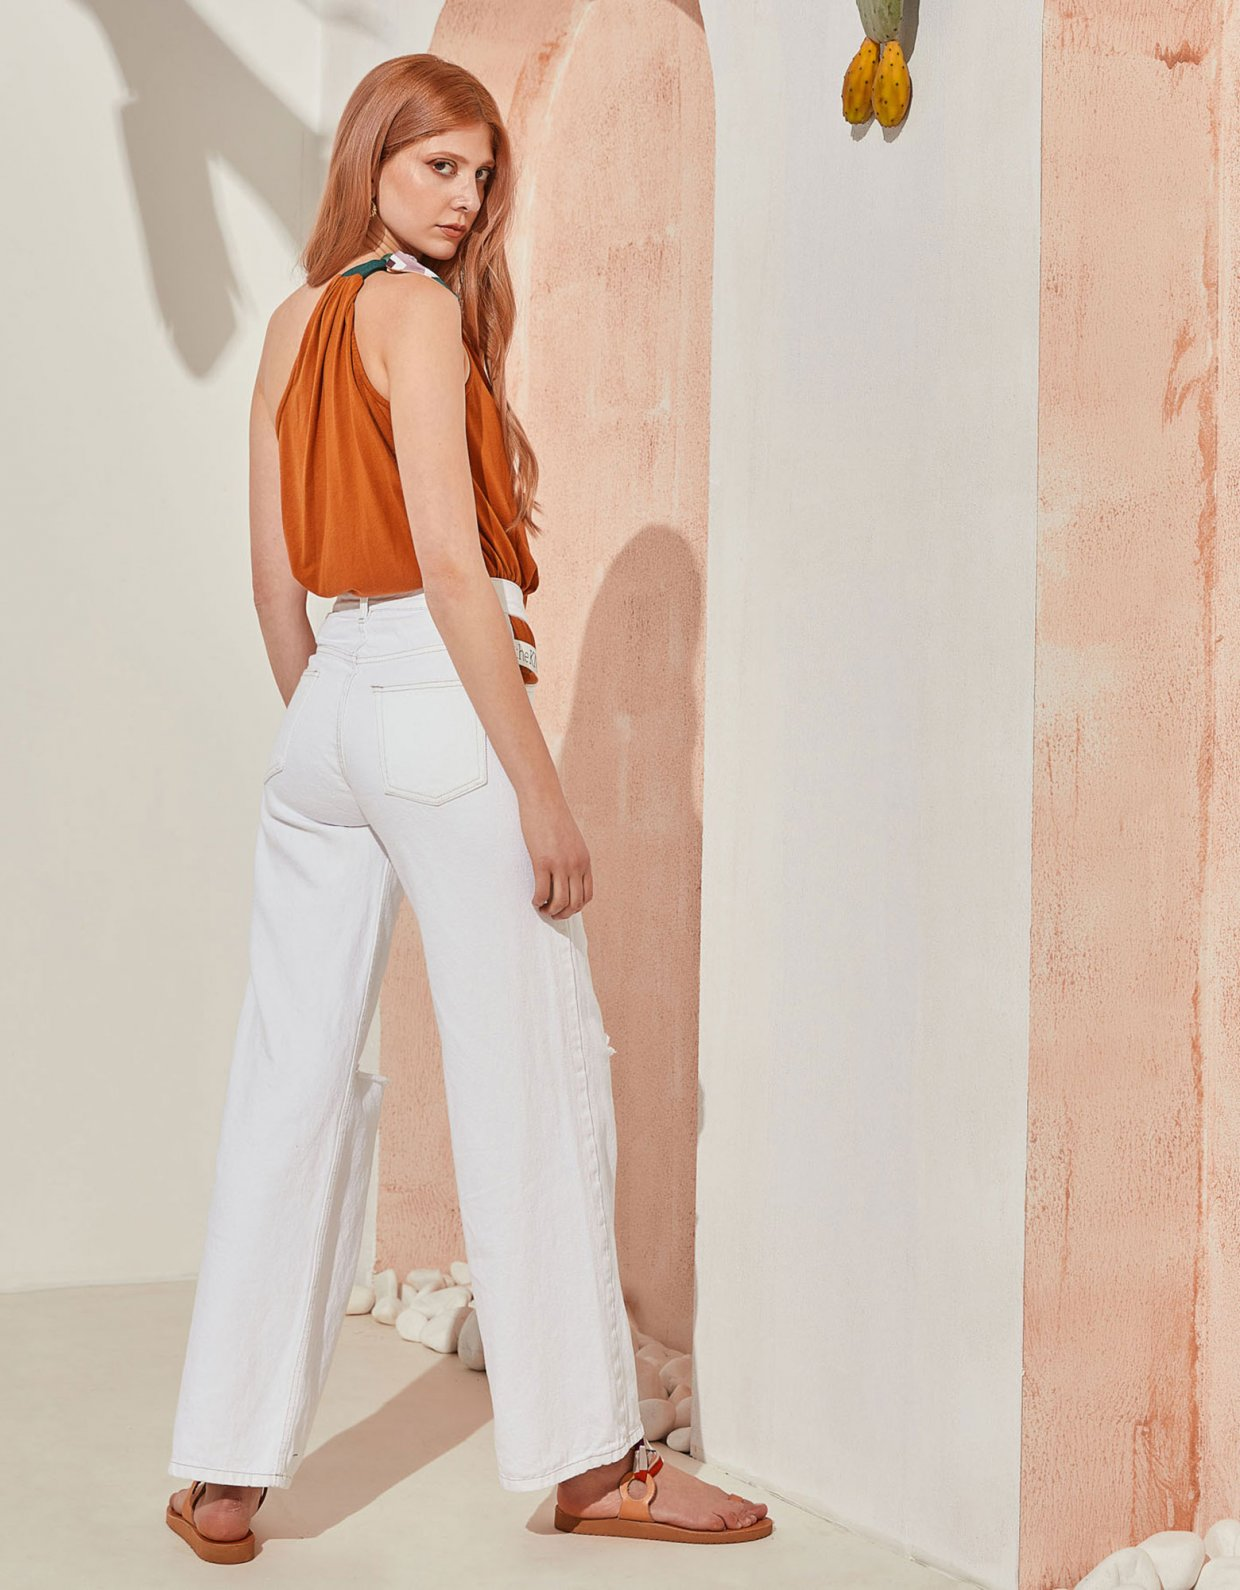 The Knl's Dawn sustainable top toffee